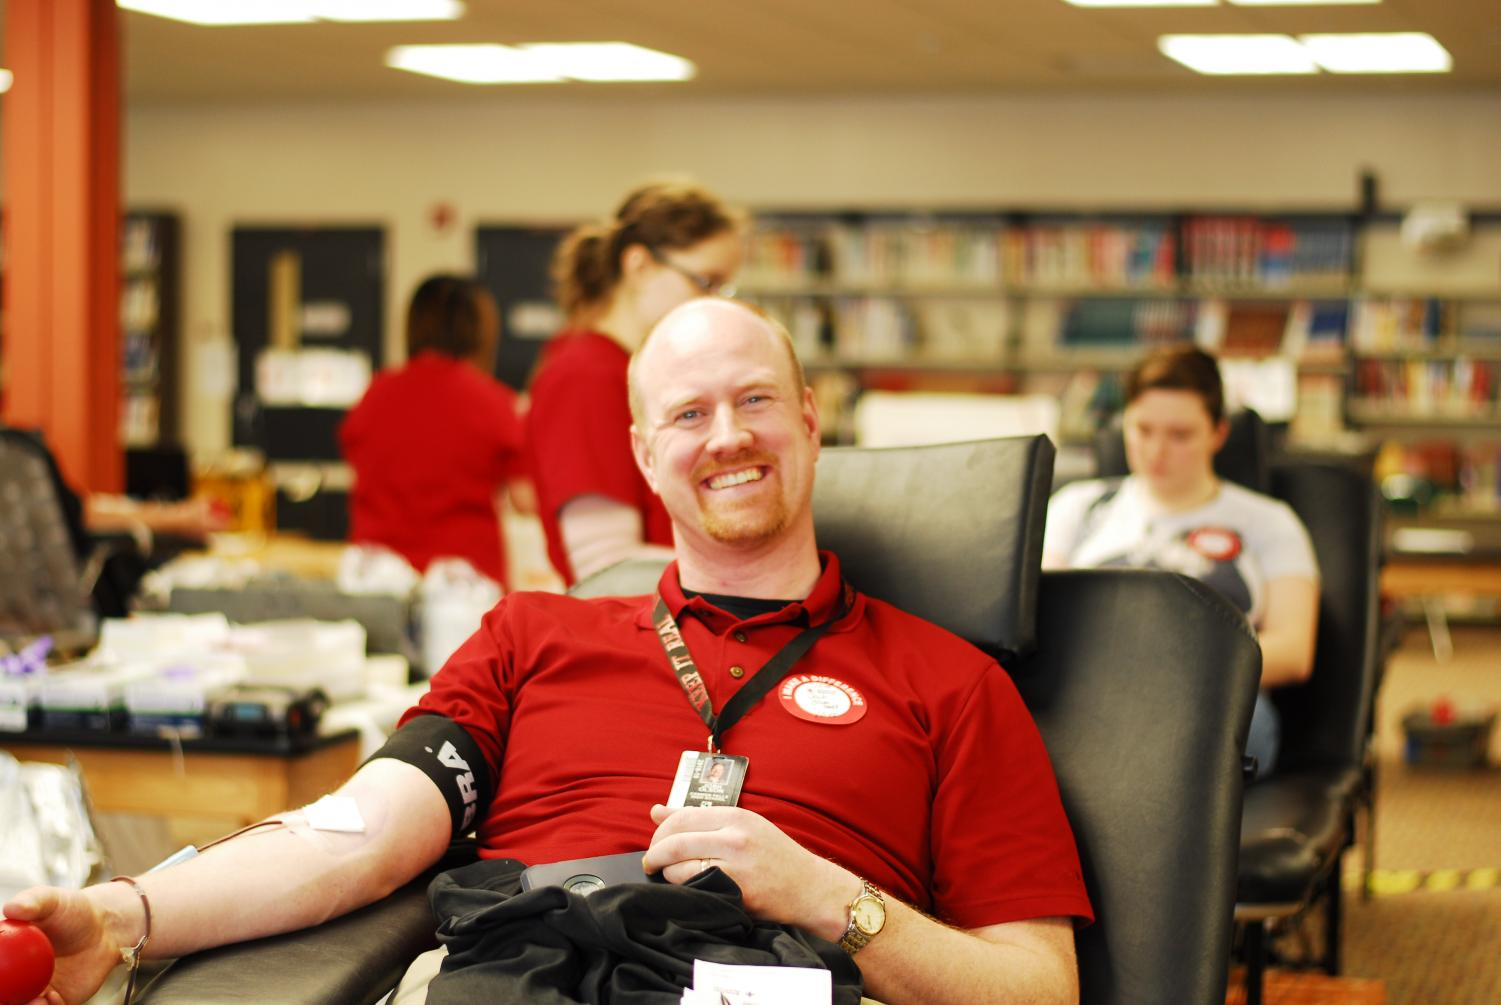 Mr. Olson, a usual donator, is excited to give again at Interact's blood drive.